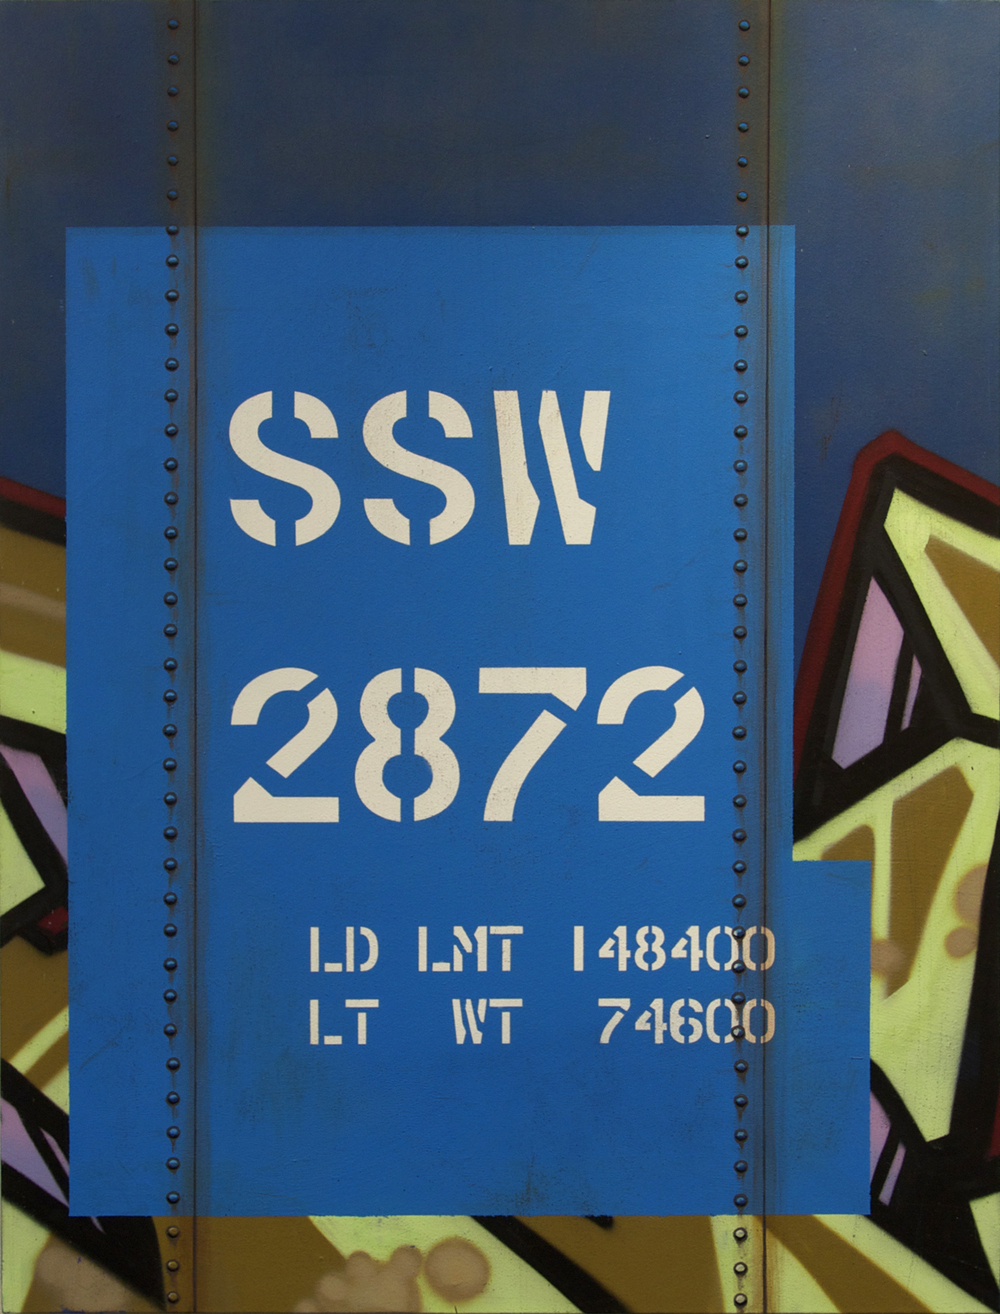 Blank Canvas #13 – SSW, Freight Train Painting, Boxcar Painting, Railroad Art, Tim Conlon Art